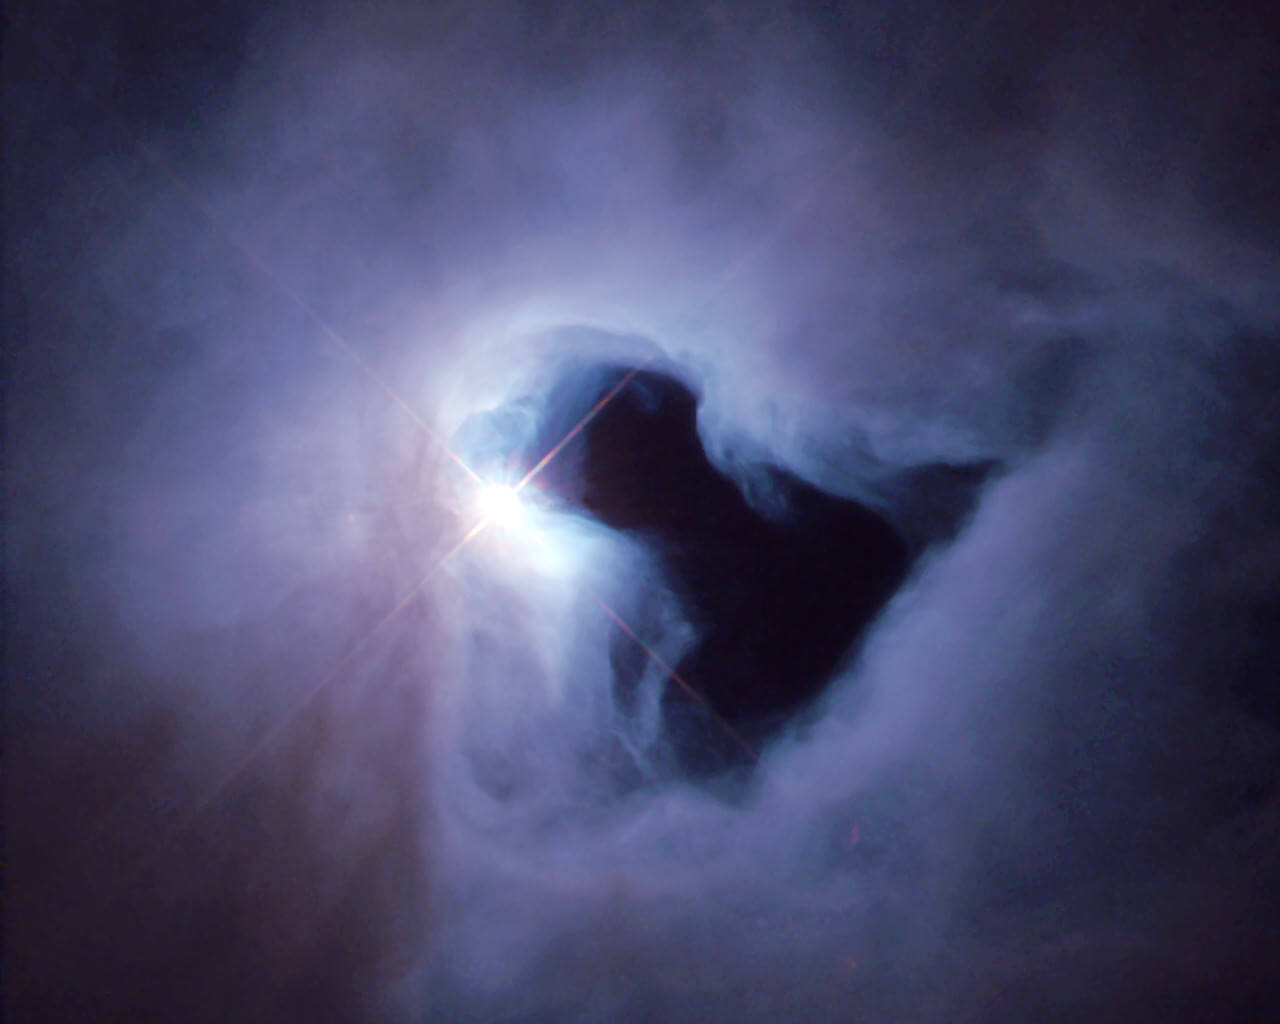 space is so cool - hubble pictures 20 (1)